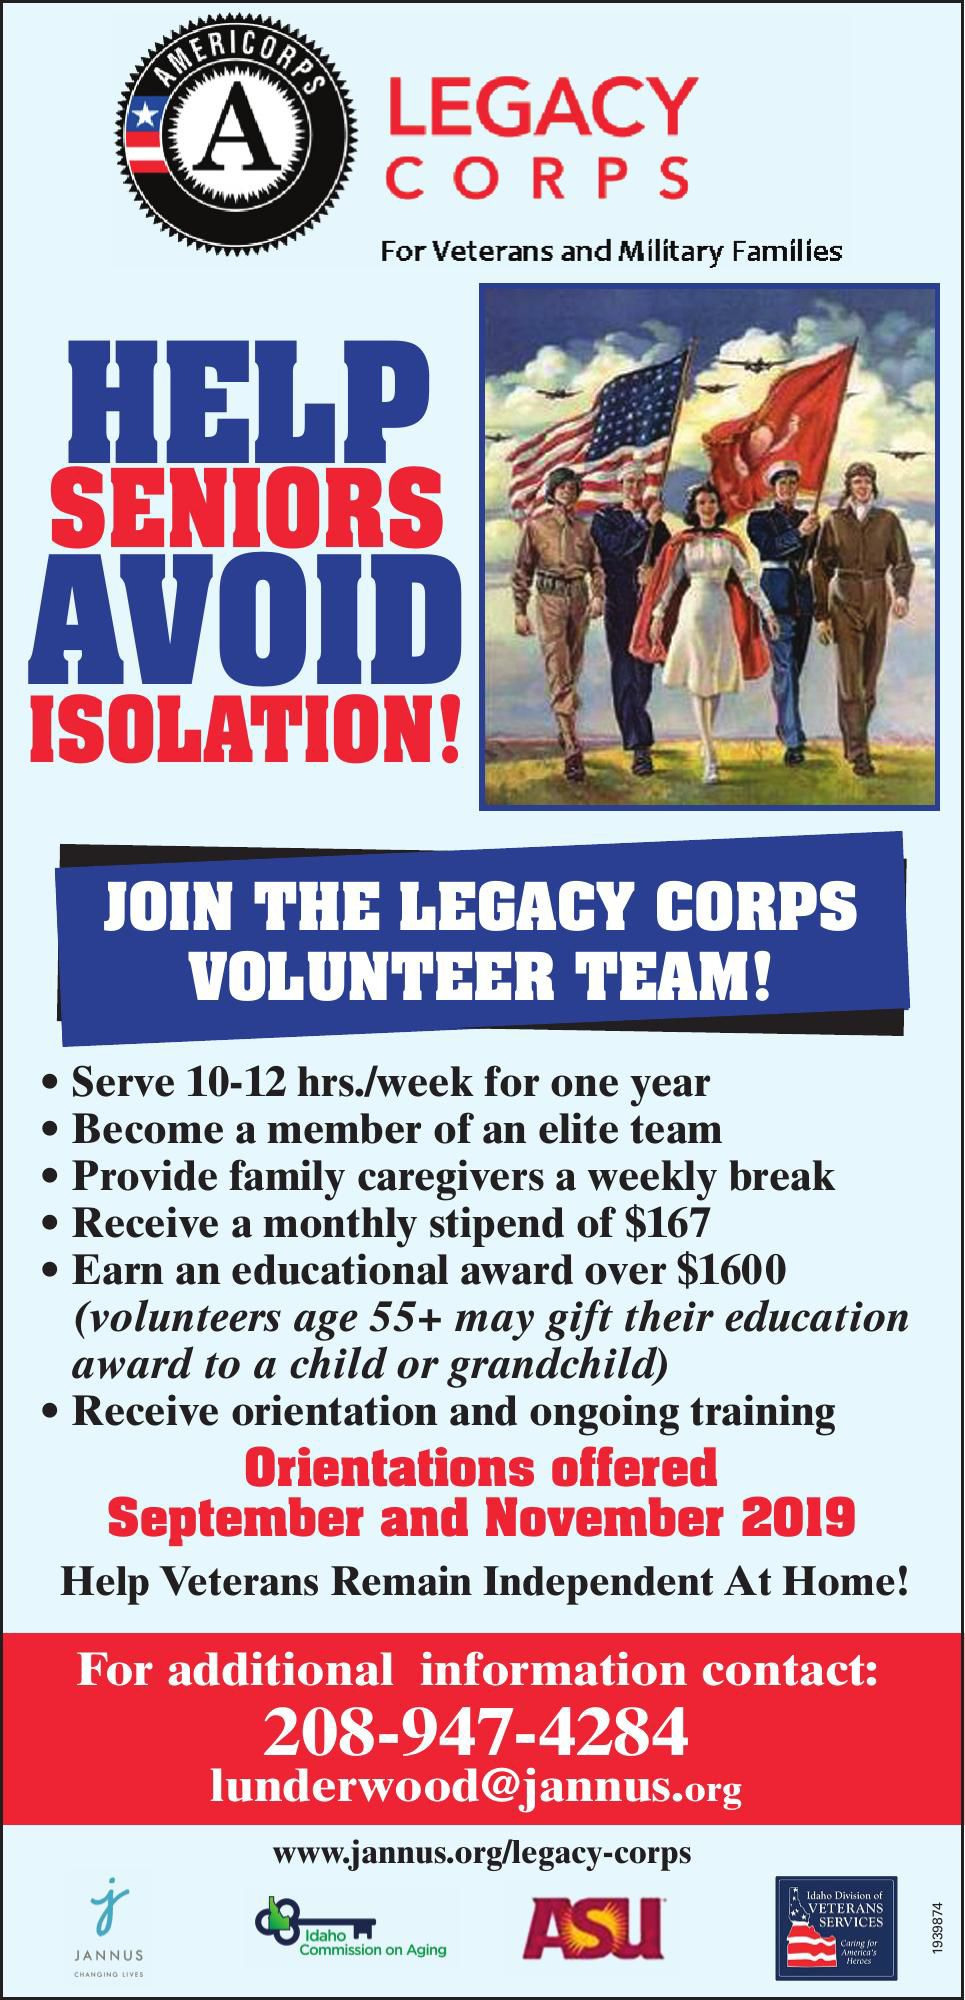 Legacy Corps for Veterans and Military Families